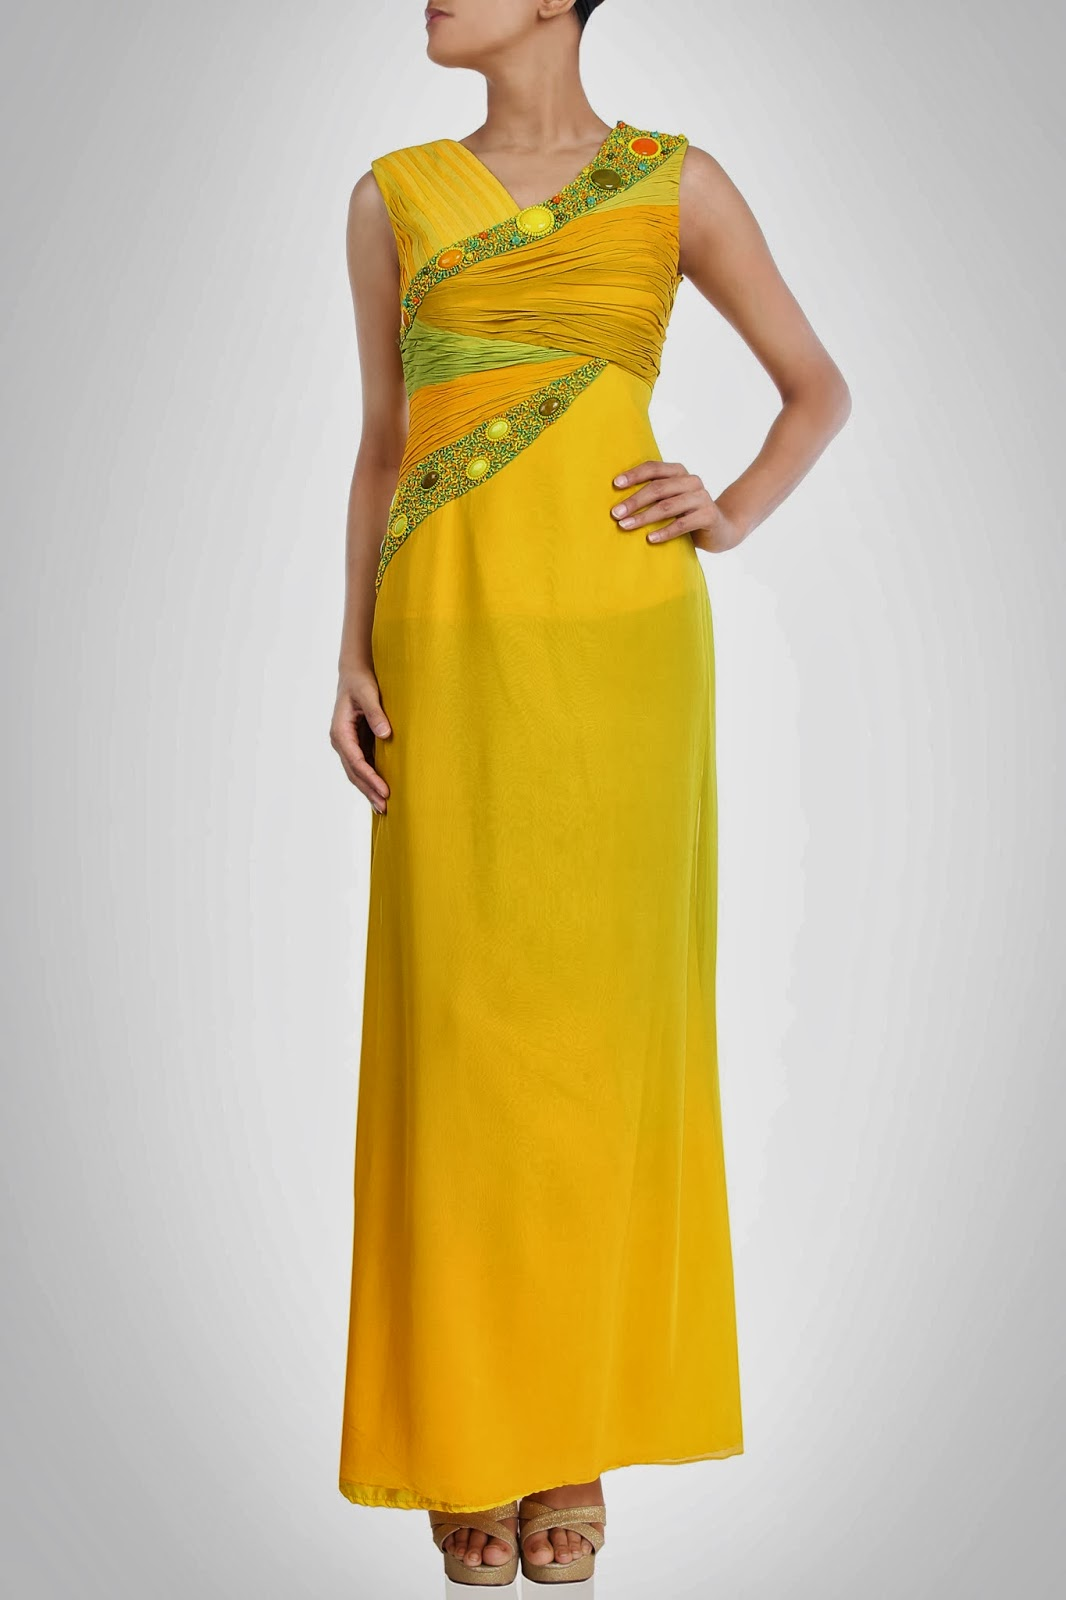 New Collection Of Designers Indian Style Maxi Dresses 2014 Vega Fashion Mom